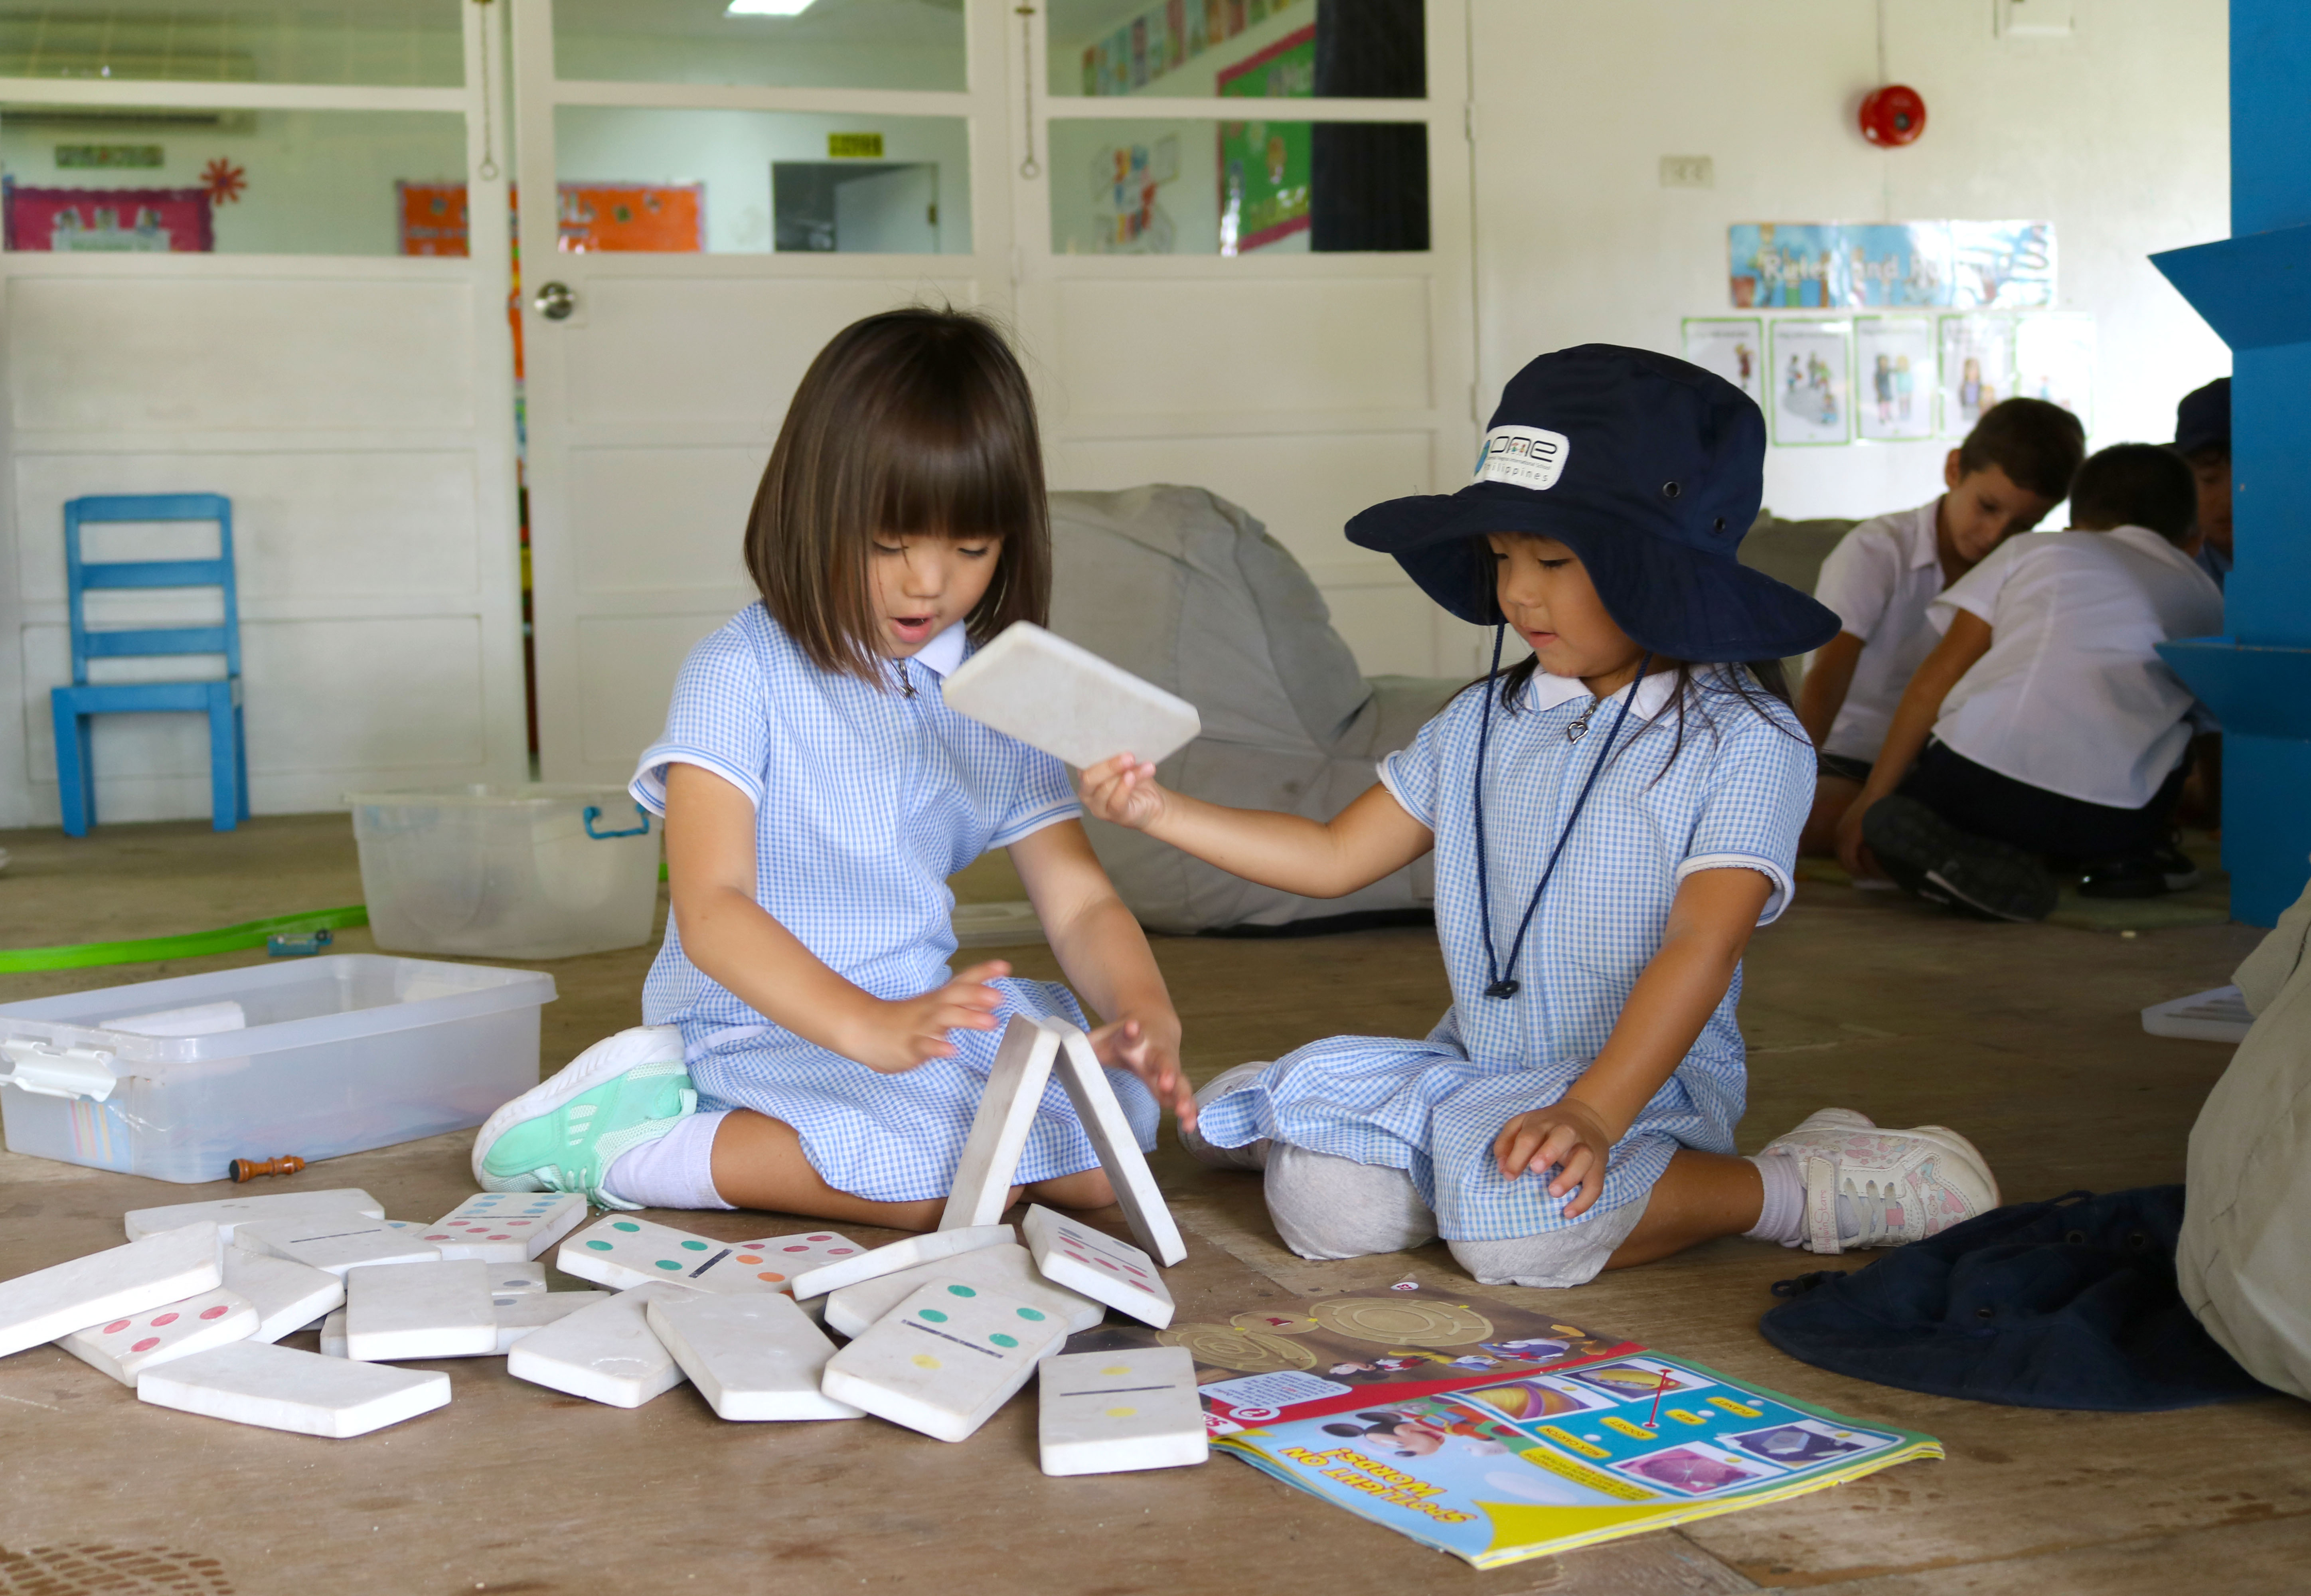 KS1 at ONE International School in Dauin Dumaguete in the Philippines.